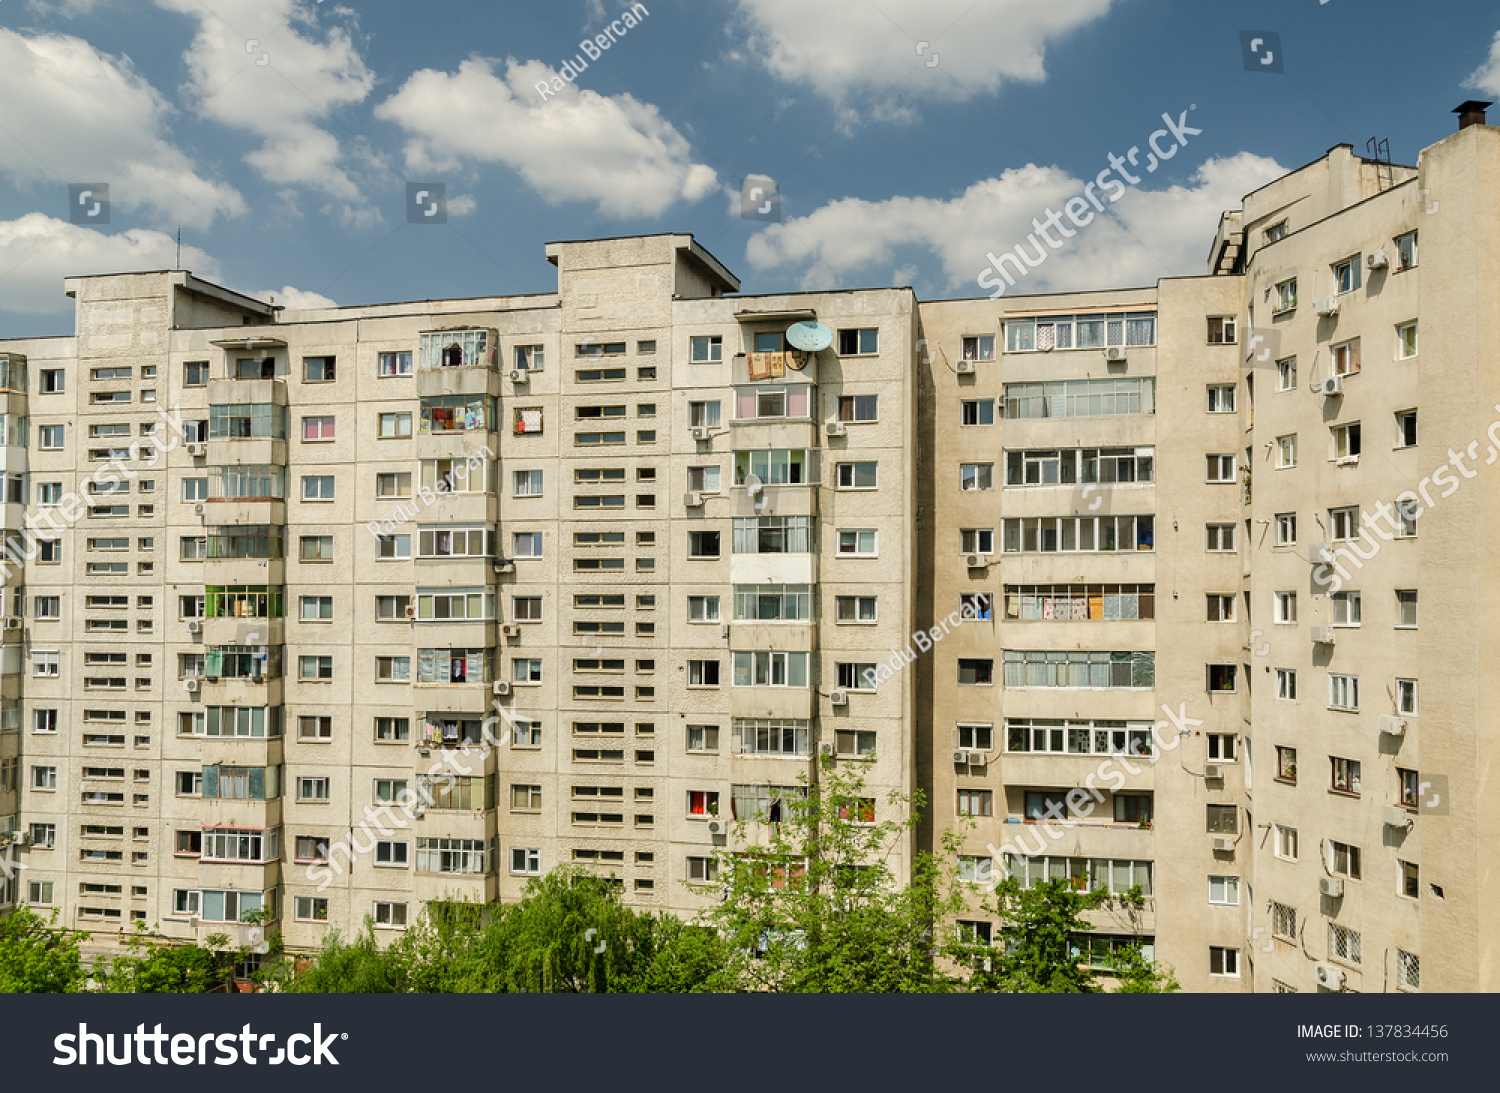 Bucharest romania may 03 communist apartments stock photo for Bucharest apartments